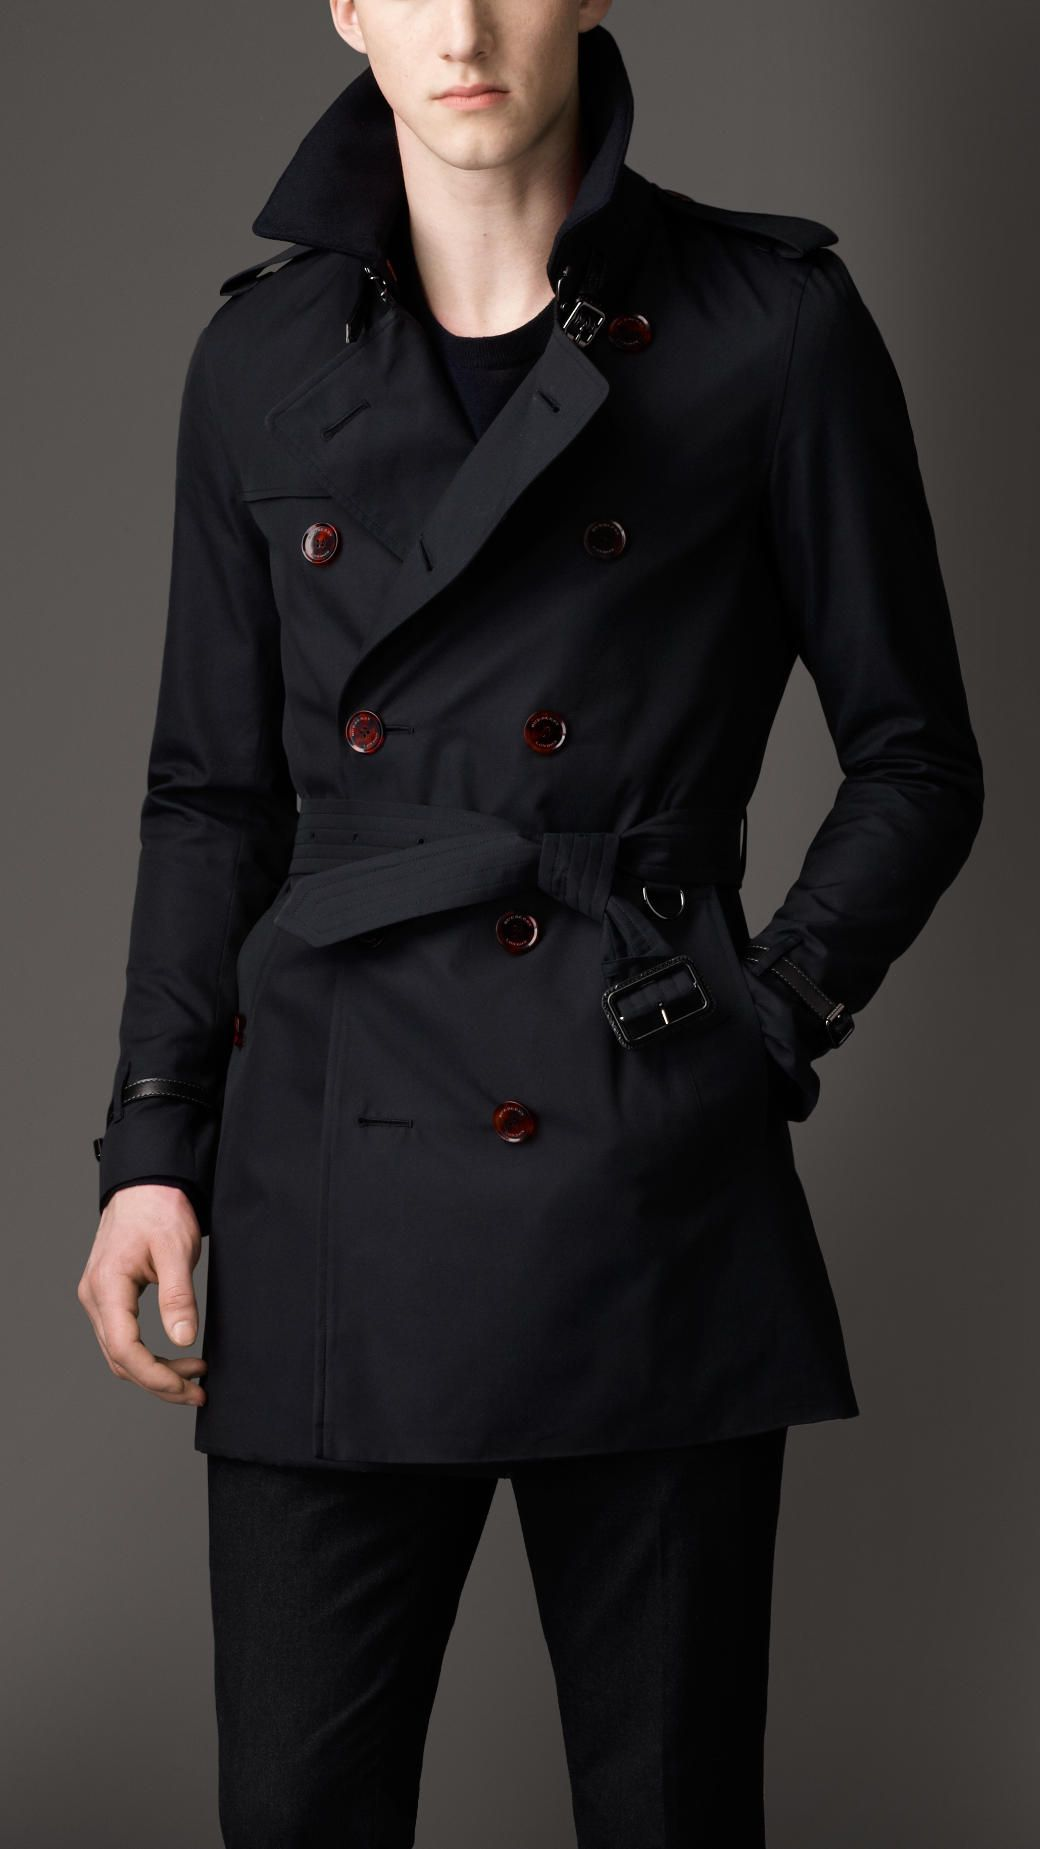 Burberry Iconic British Luxury Brand Est 1856 Mens Outfits Mens Winter Fashion Menswear